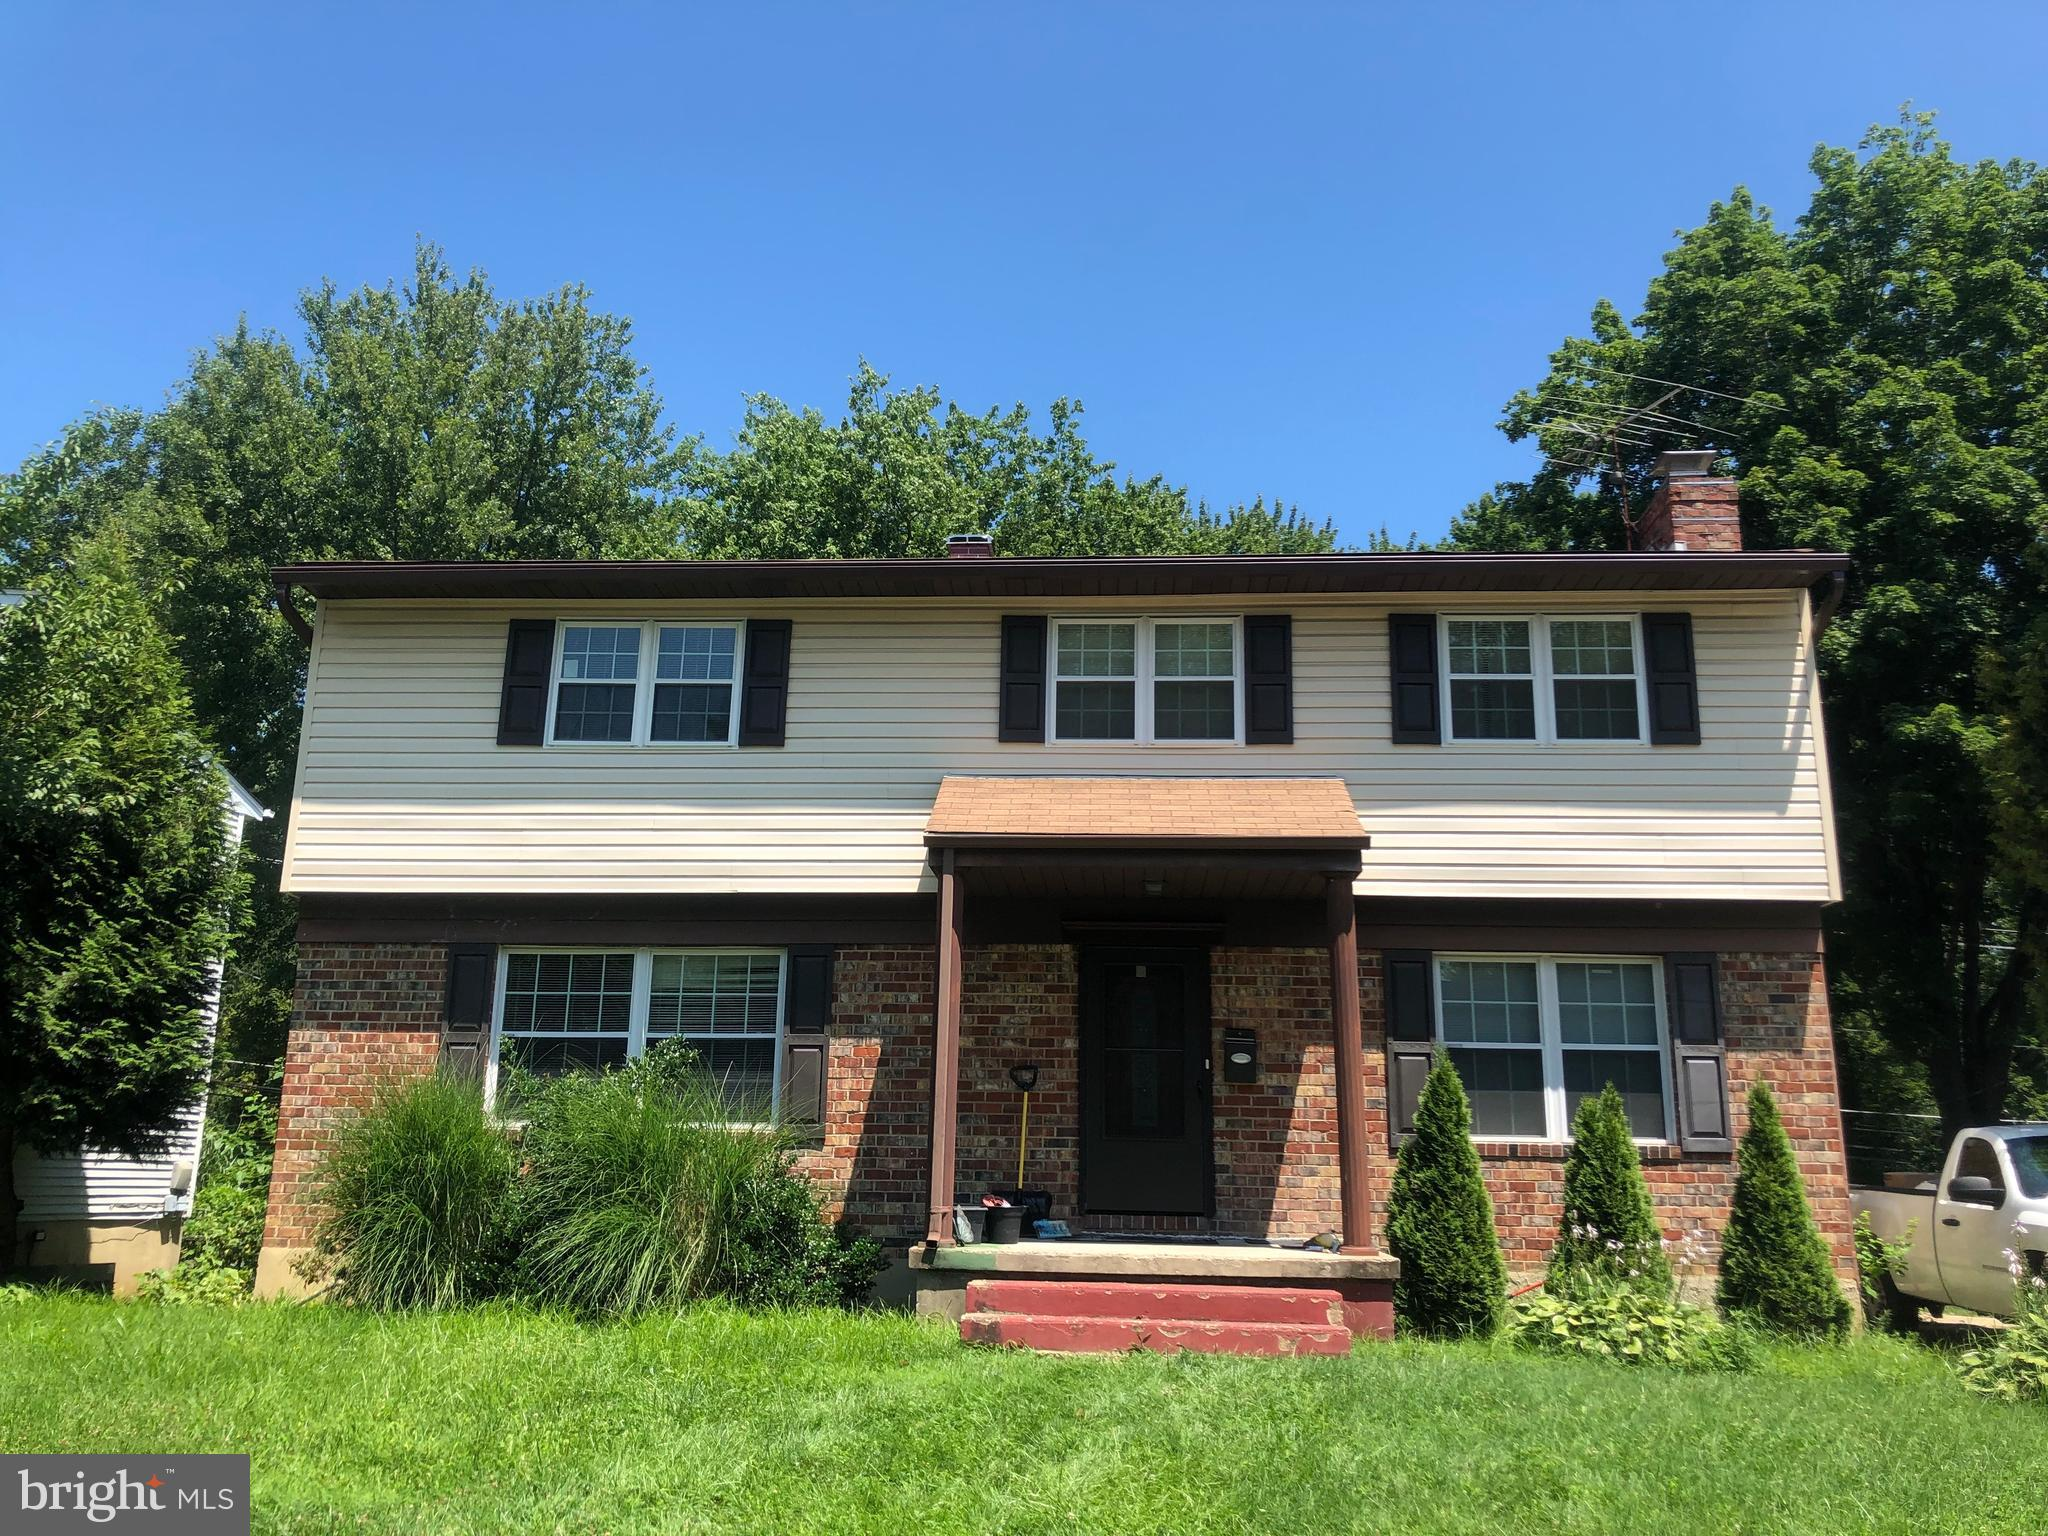 9910 SOUTHALL ROAD, RANDALLSTOWN, MD 21133